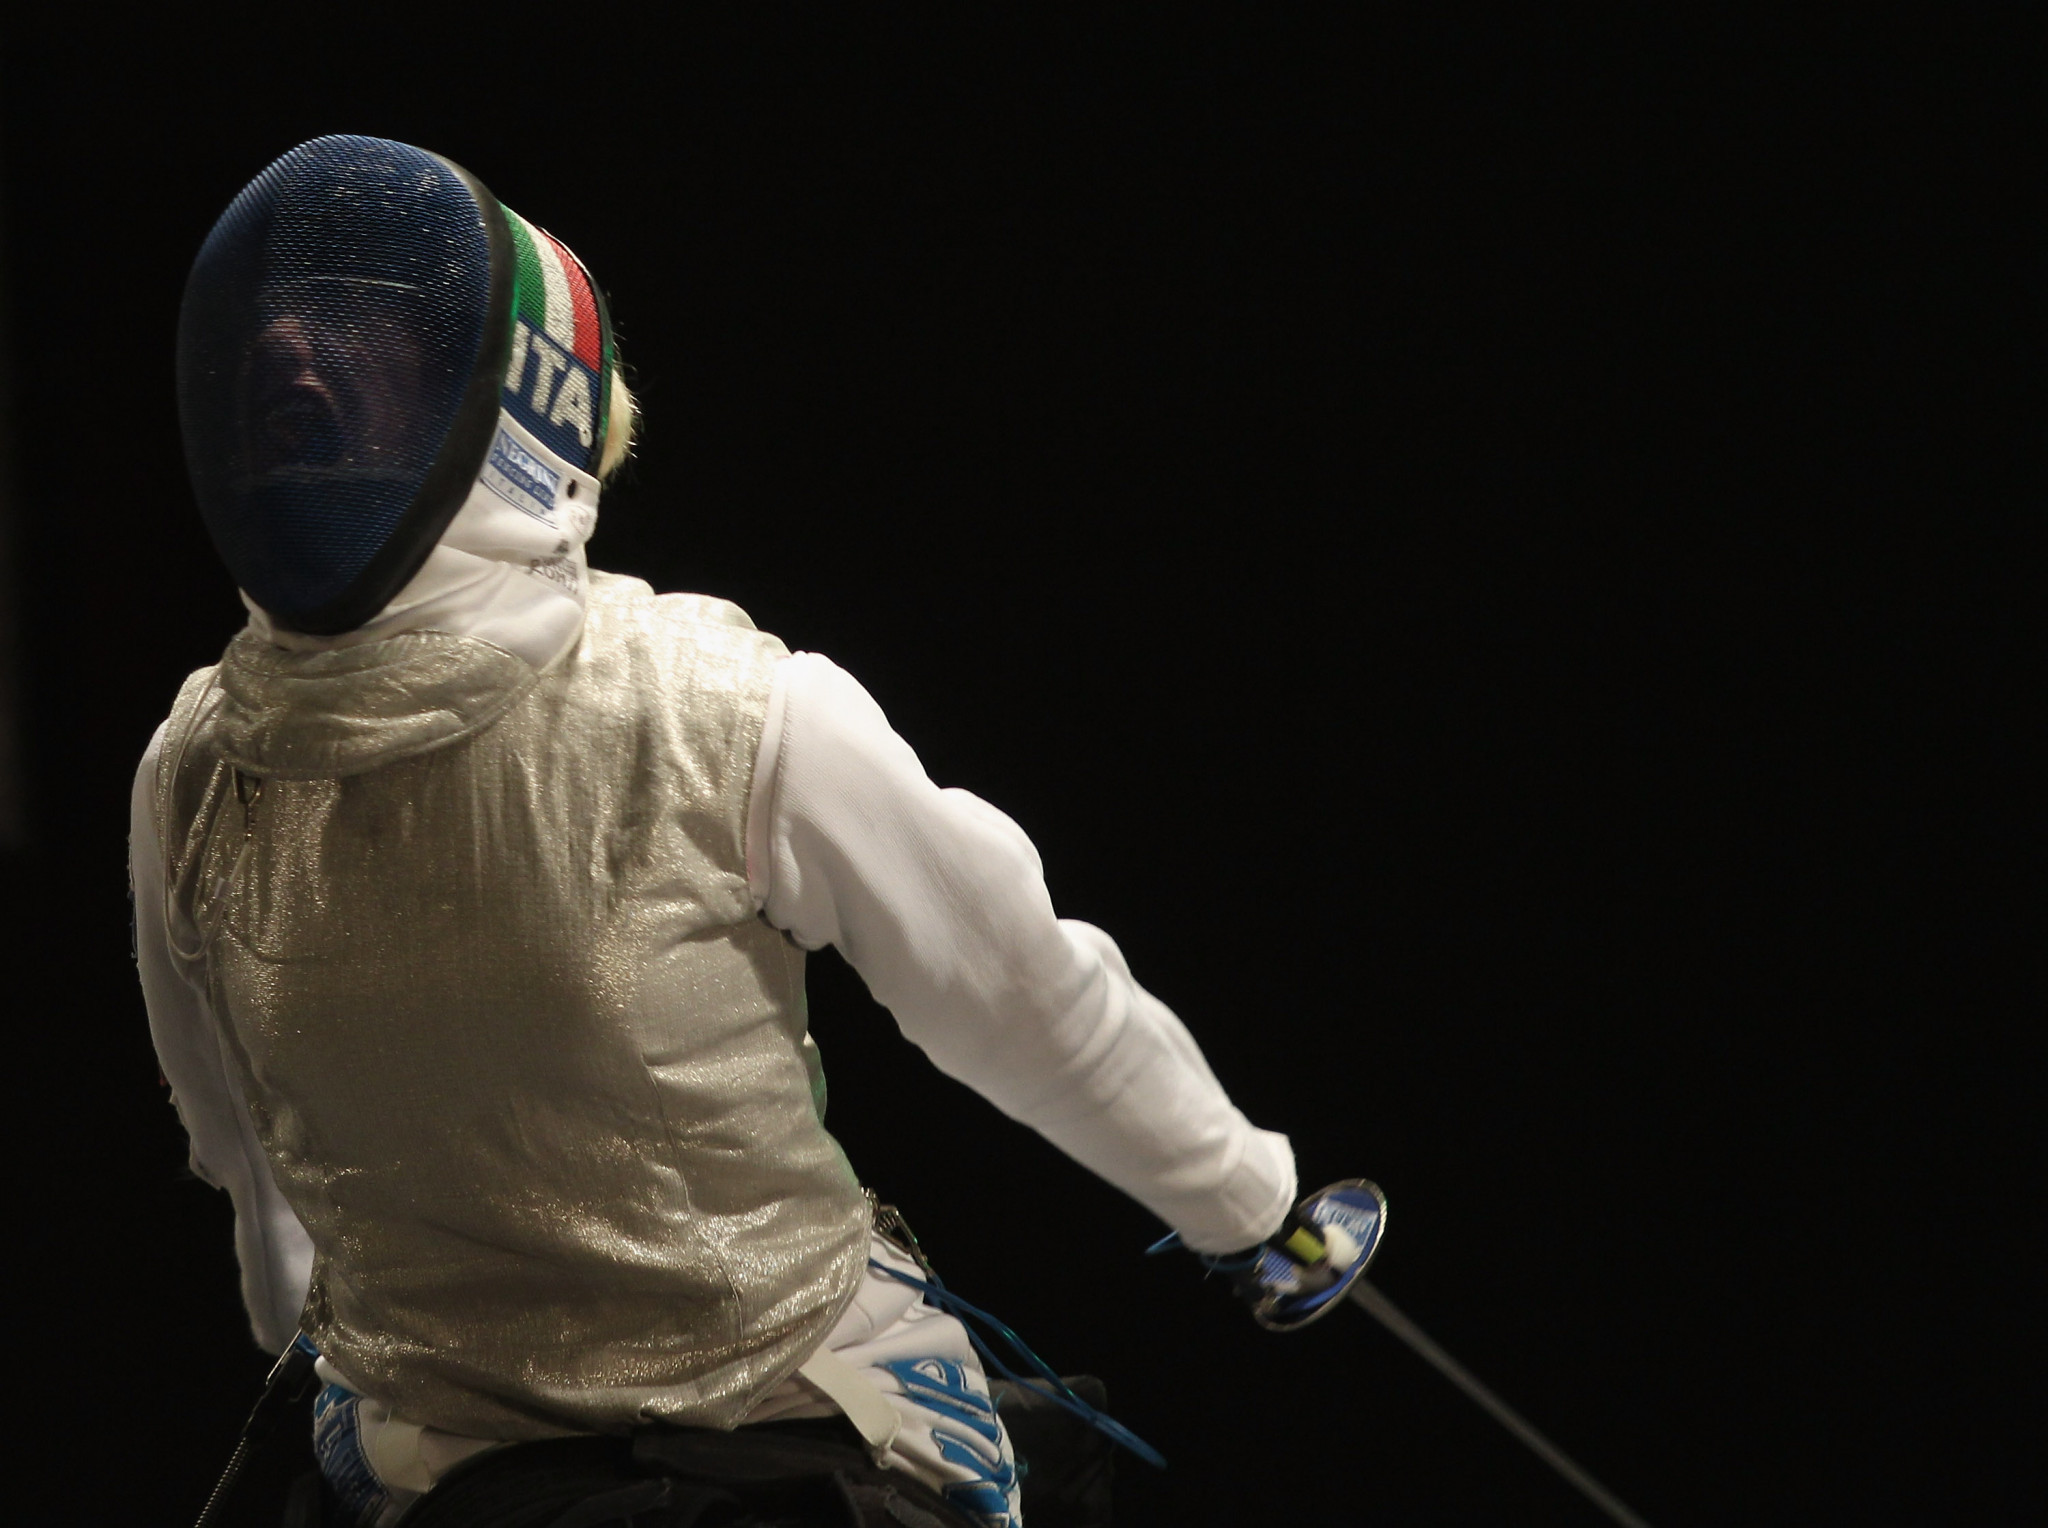 Vio among Paralympic champions competing at Wheelchair Fencing World Cup